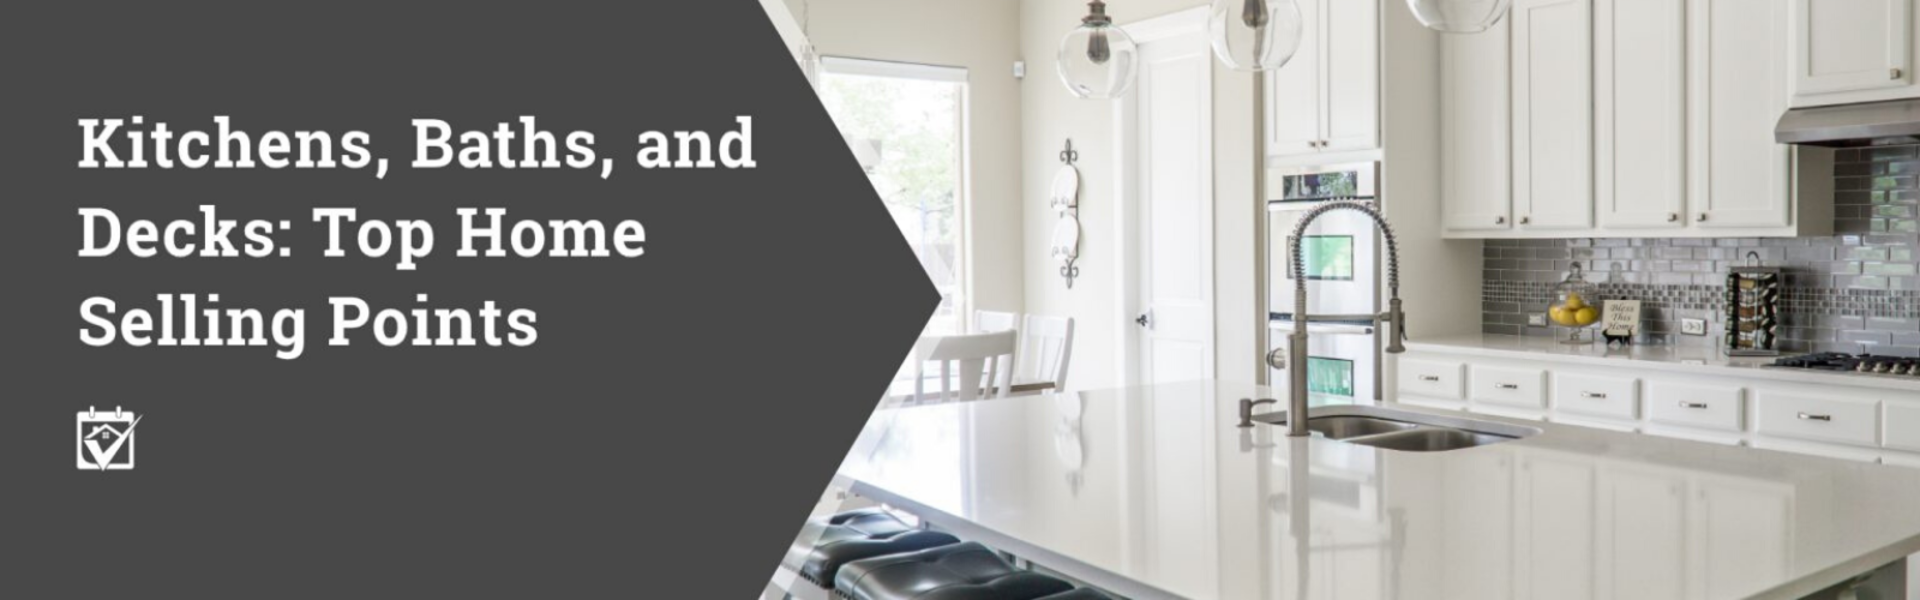 Kitchens, Baths, and Decks: Top Home Selling Points